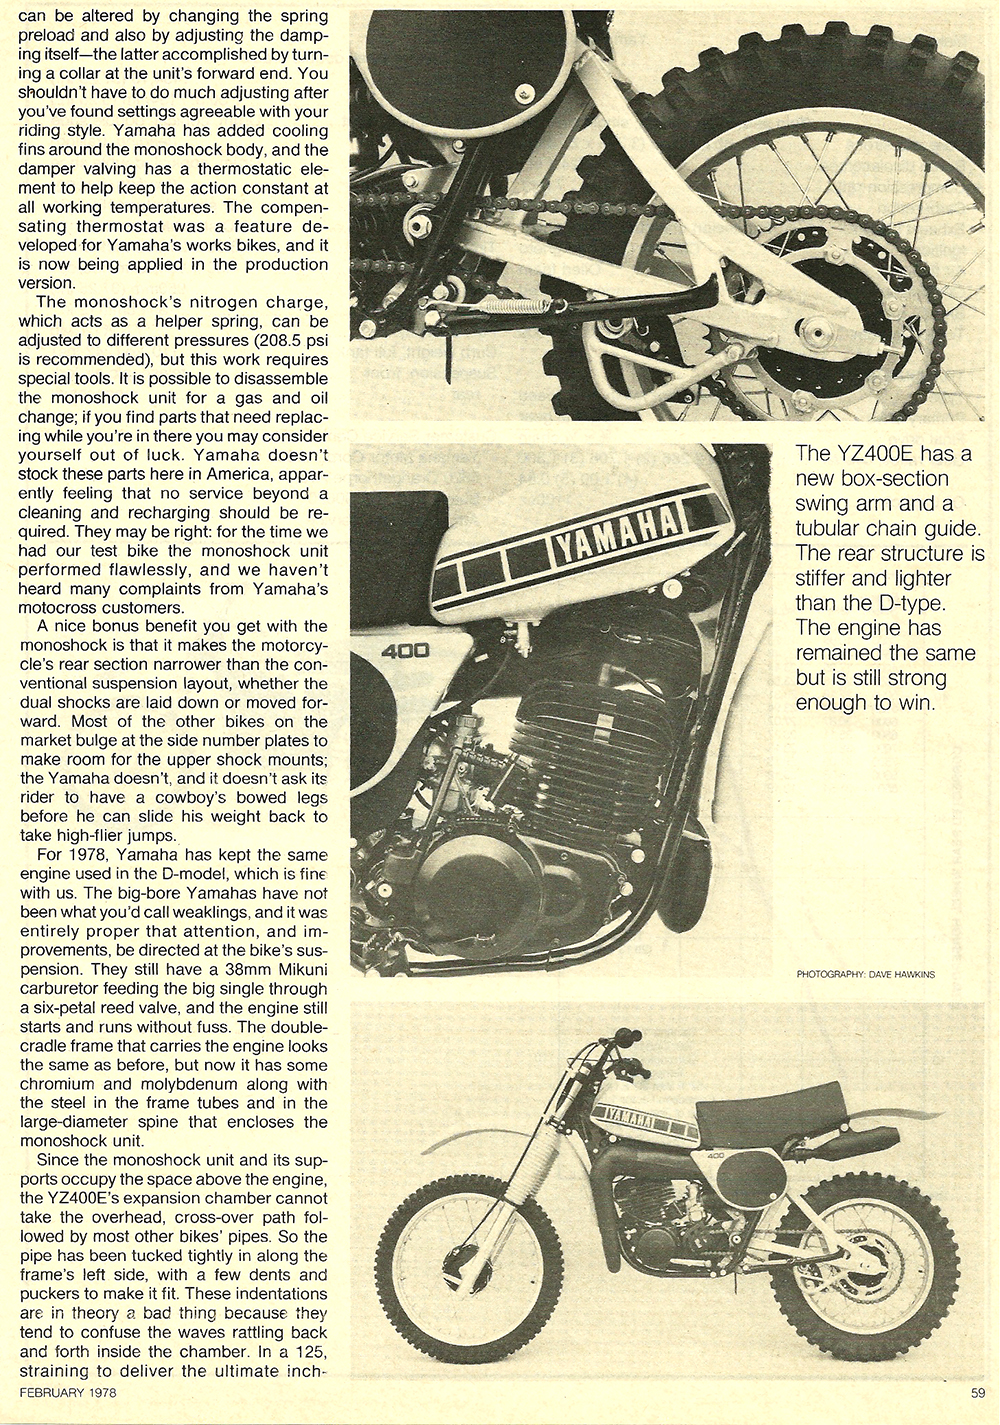 1978 Yamaha YZ400E road test 4.jpg